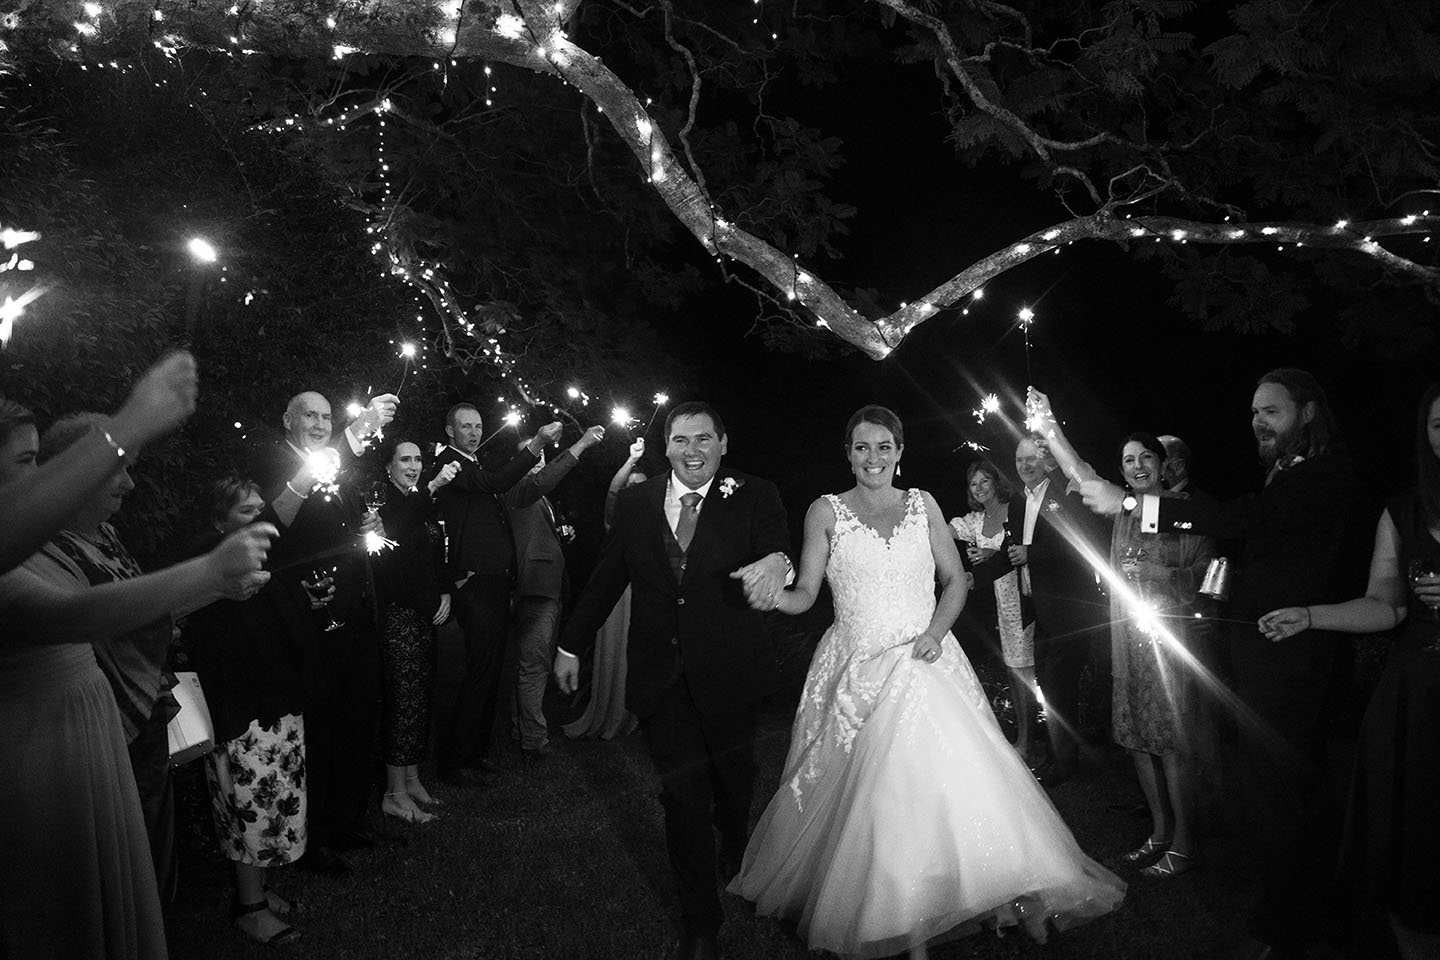 Wedding Photography - black and white sparklers